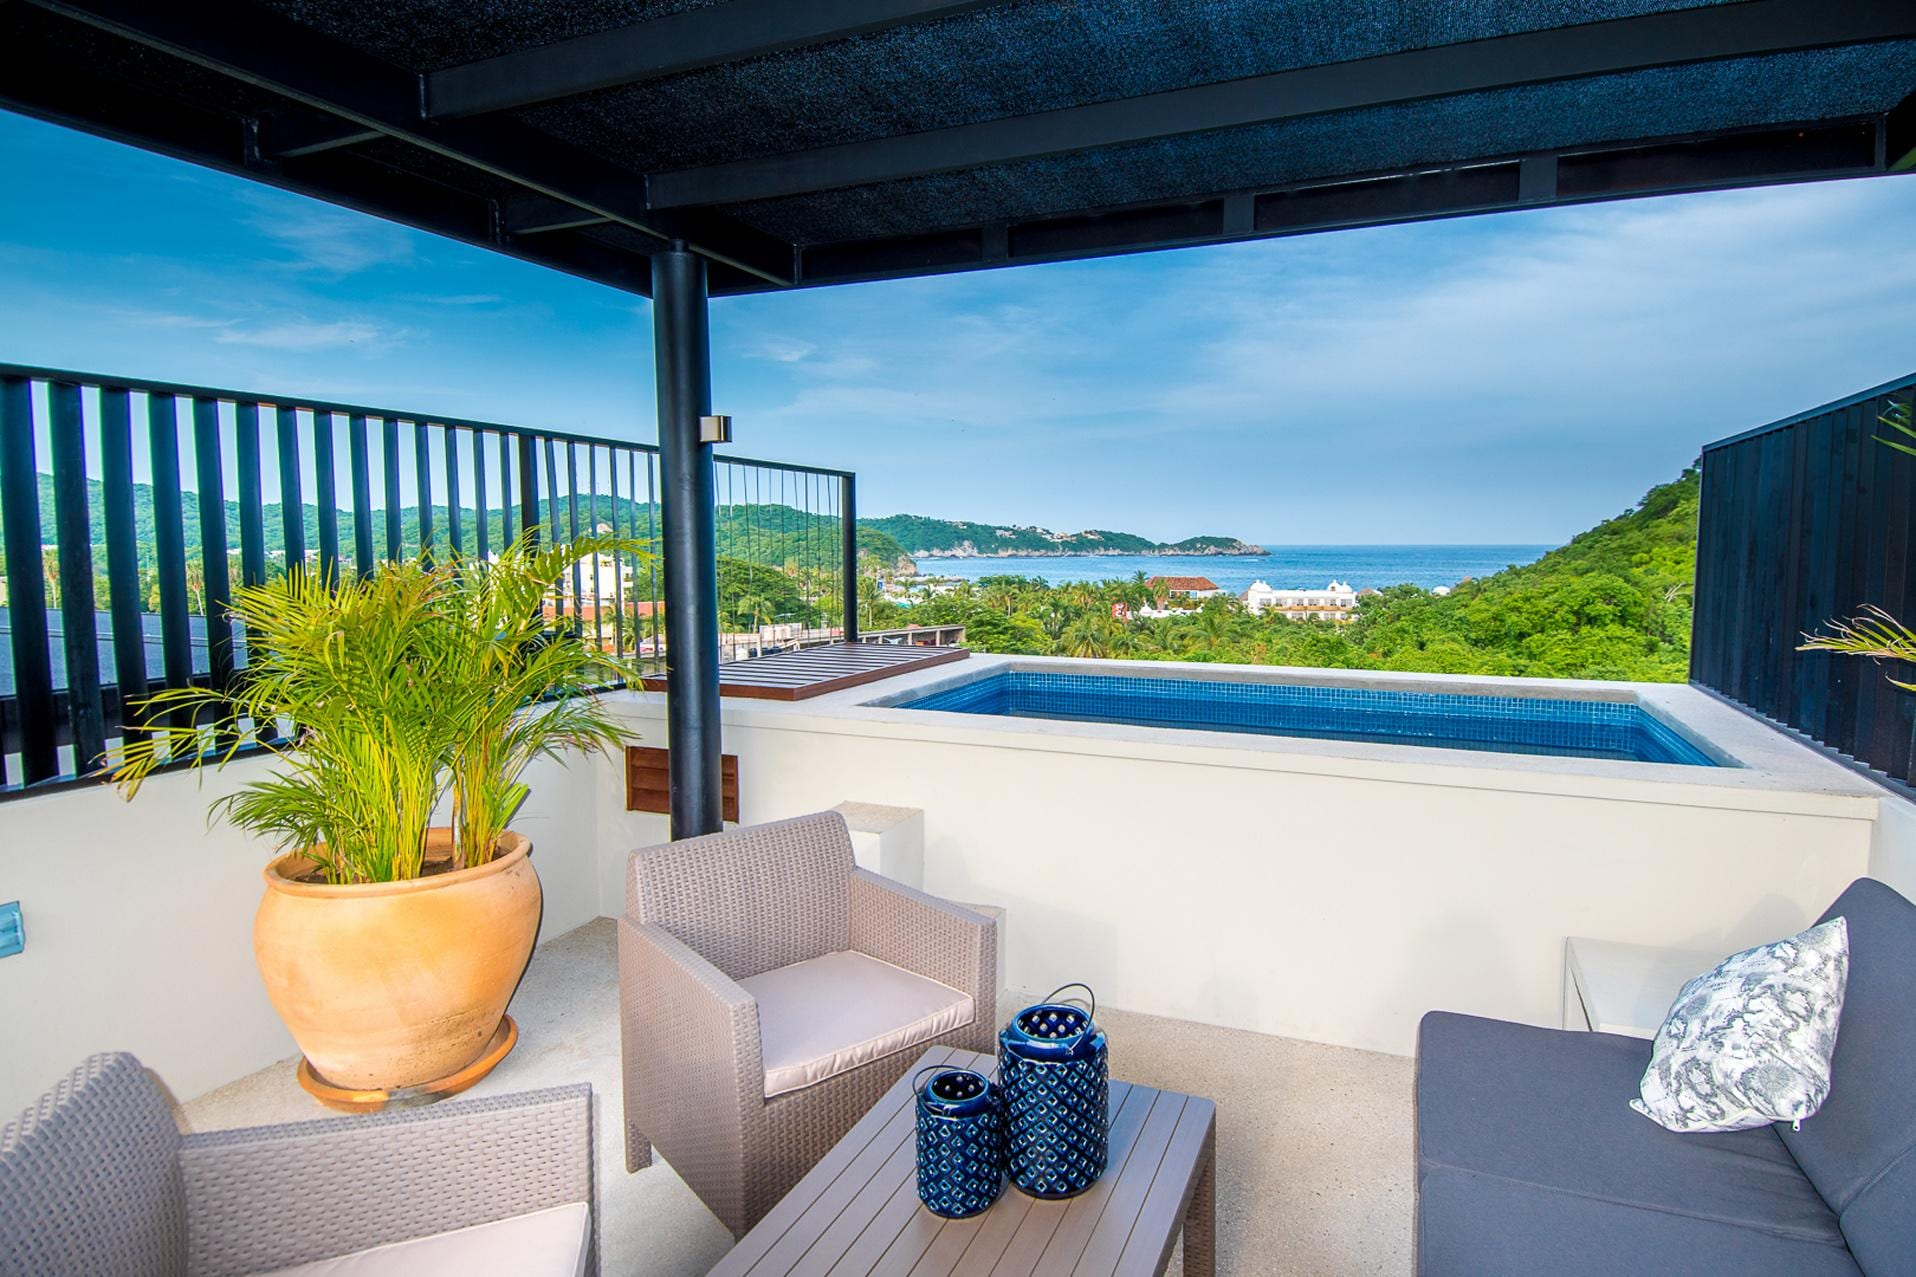 Private Rooftop Plunge Pool in Chic Central Location